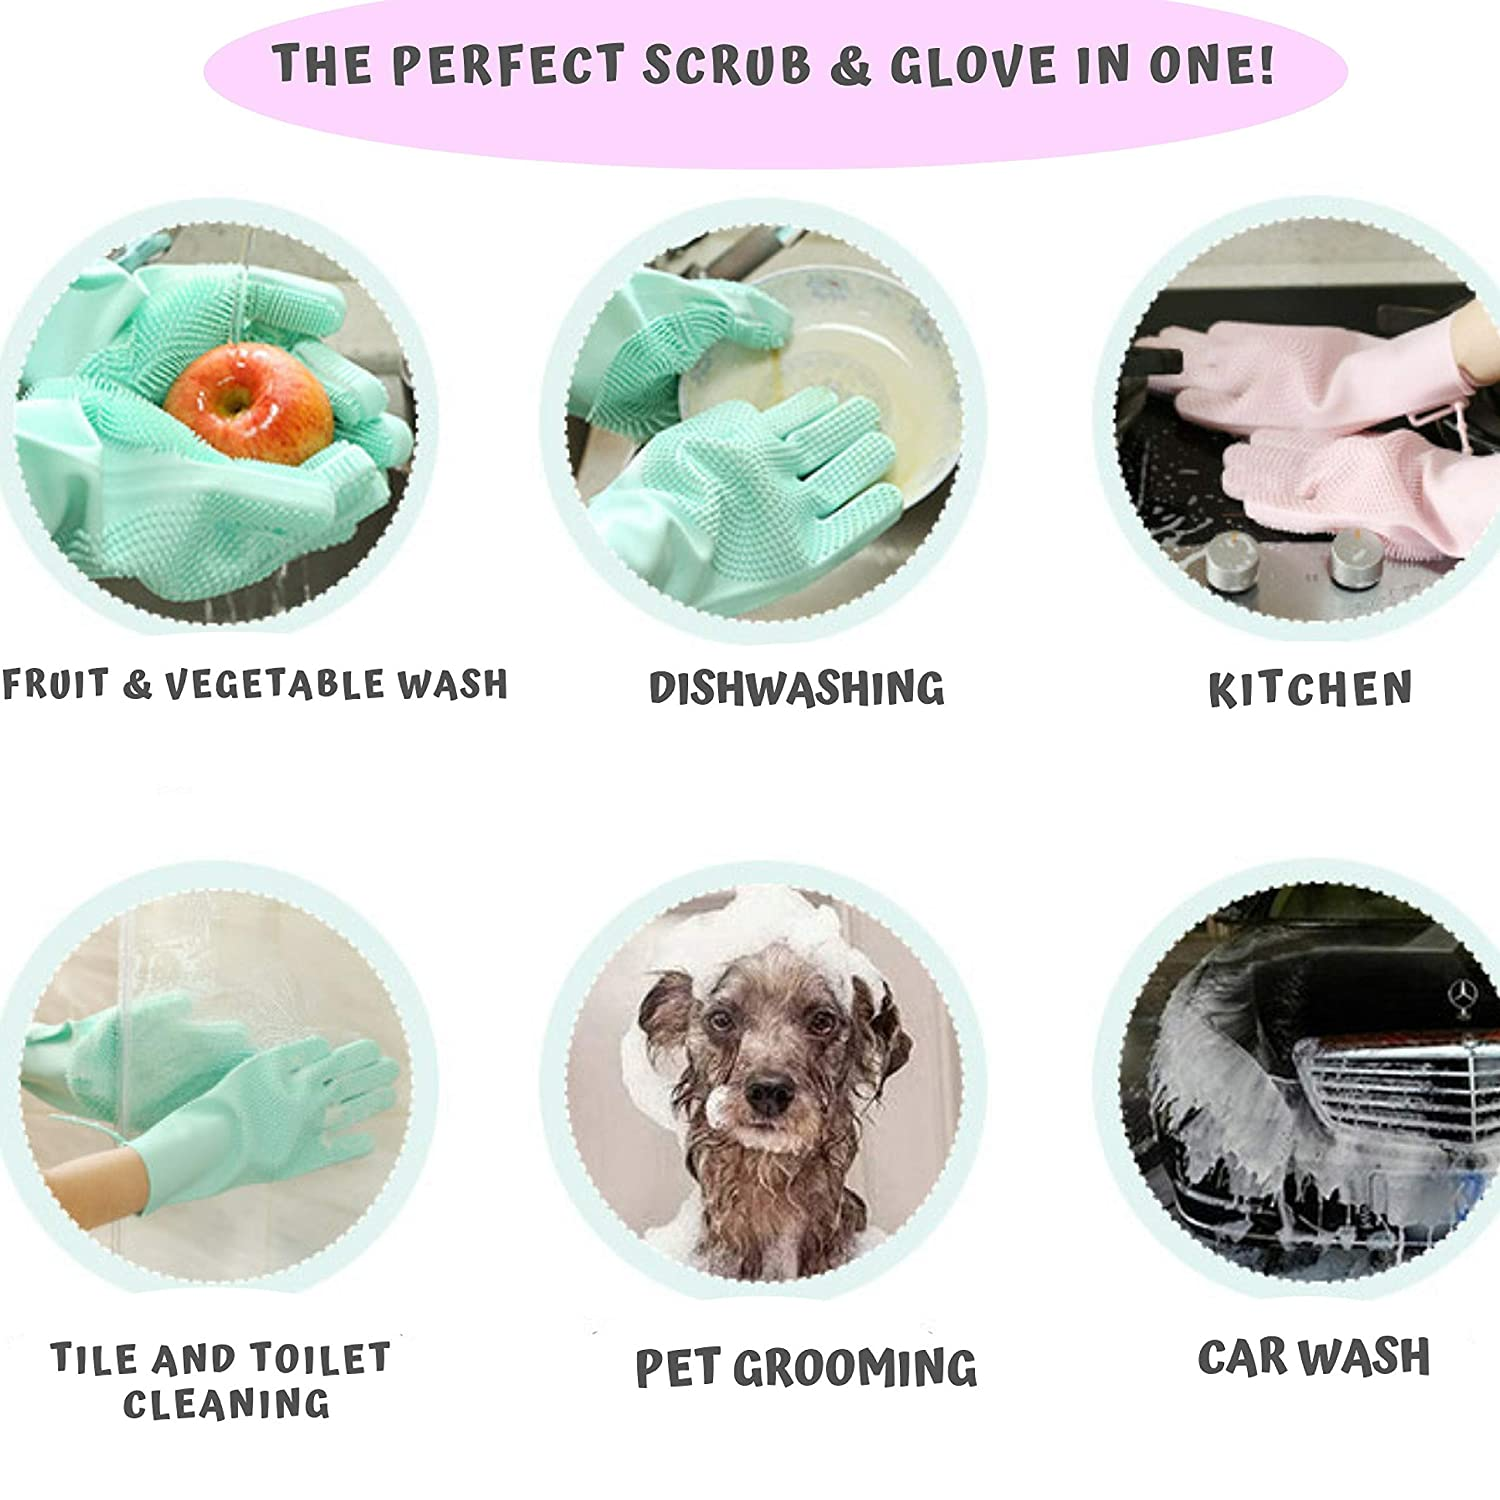 Kitchen Magic Silicone Gloves 1 Pair Reusable Heat Resistant Silicone Brush Scrubber Gloves for Dishwashing Pink, Large Wishy Washy and Pet Grooming Bathroom,Car Washing